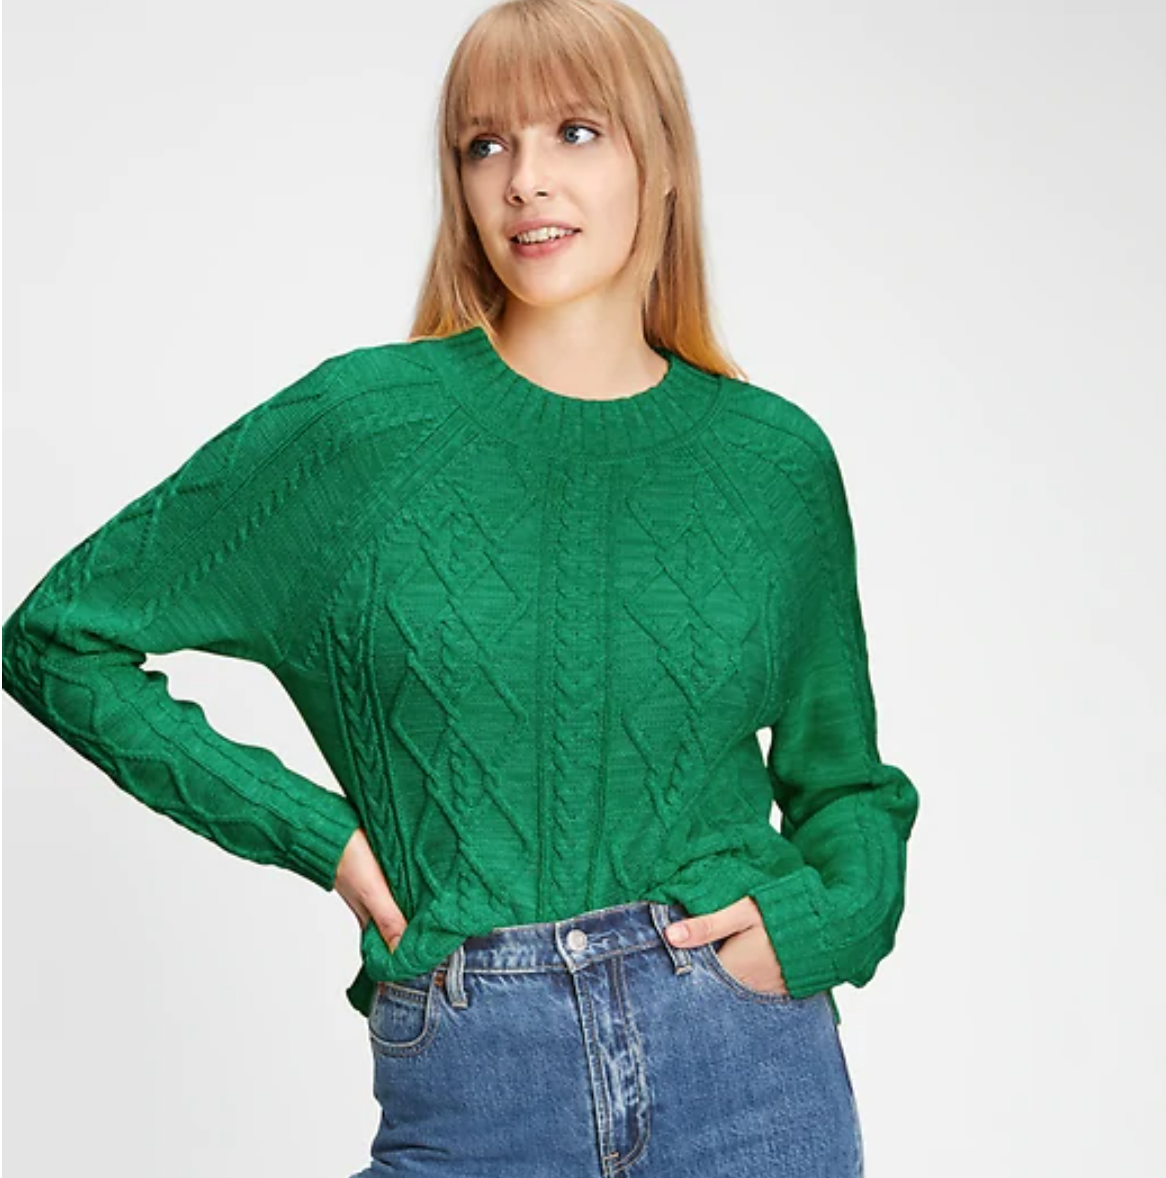 Gap Up to 50% off + Extra 10% off regular-priced styles